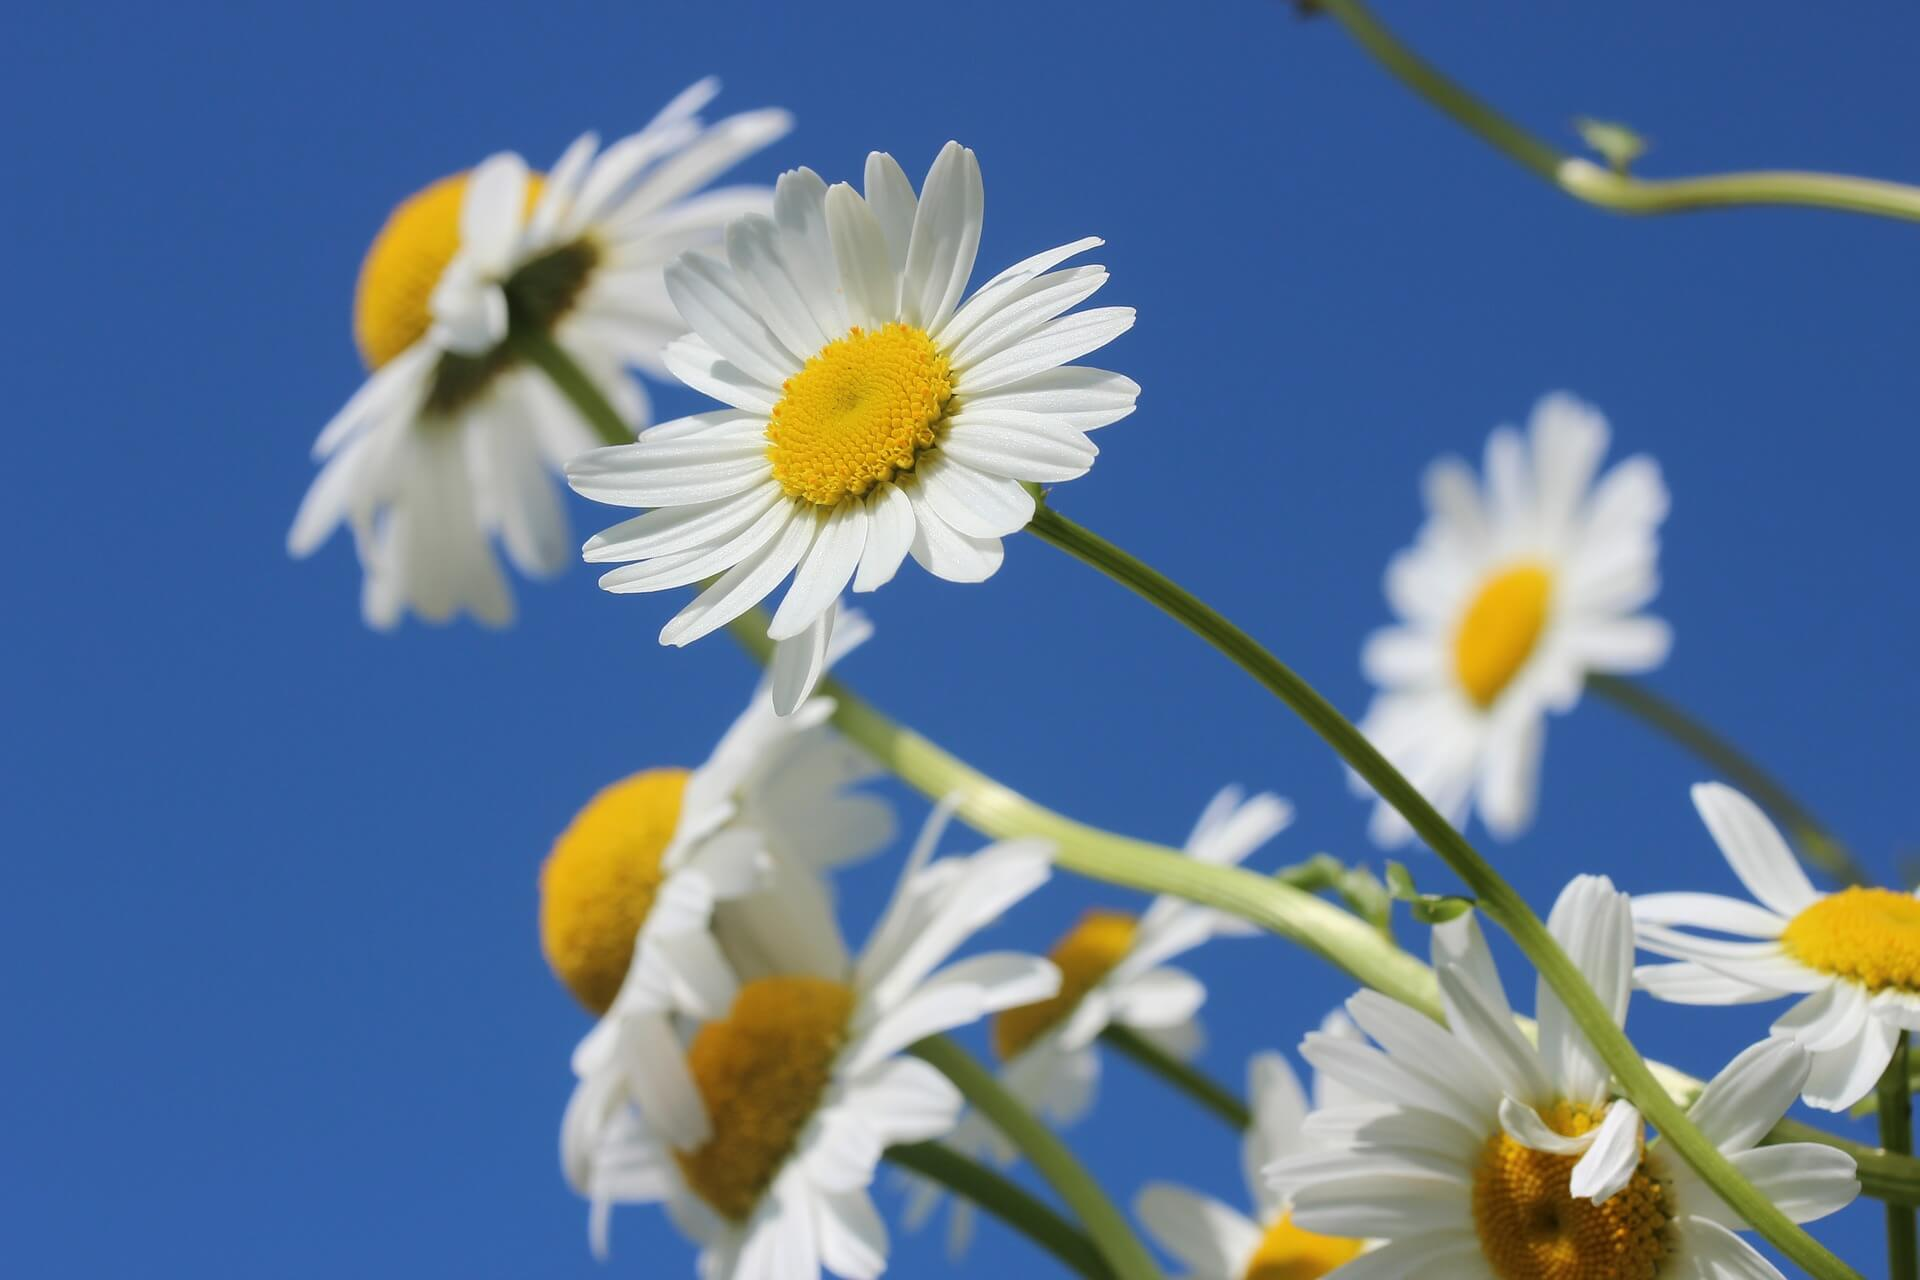 Works in the Bible, are like daisies, and Im studying